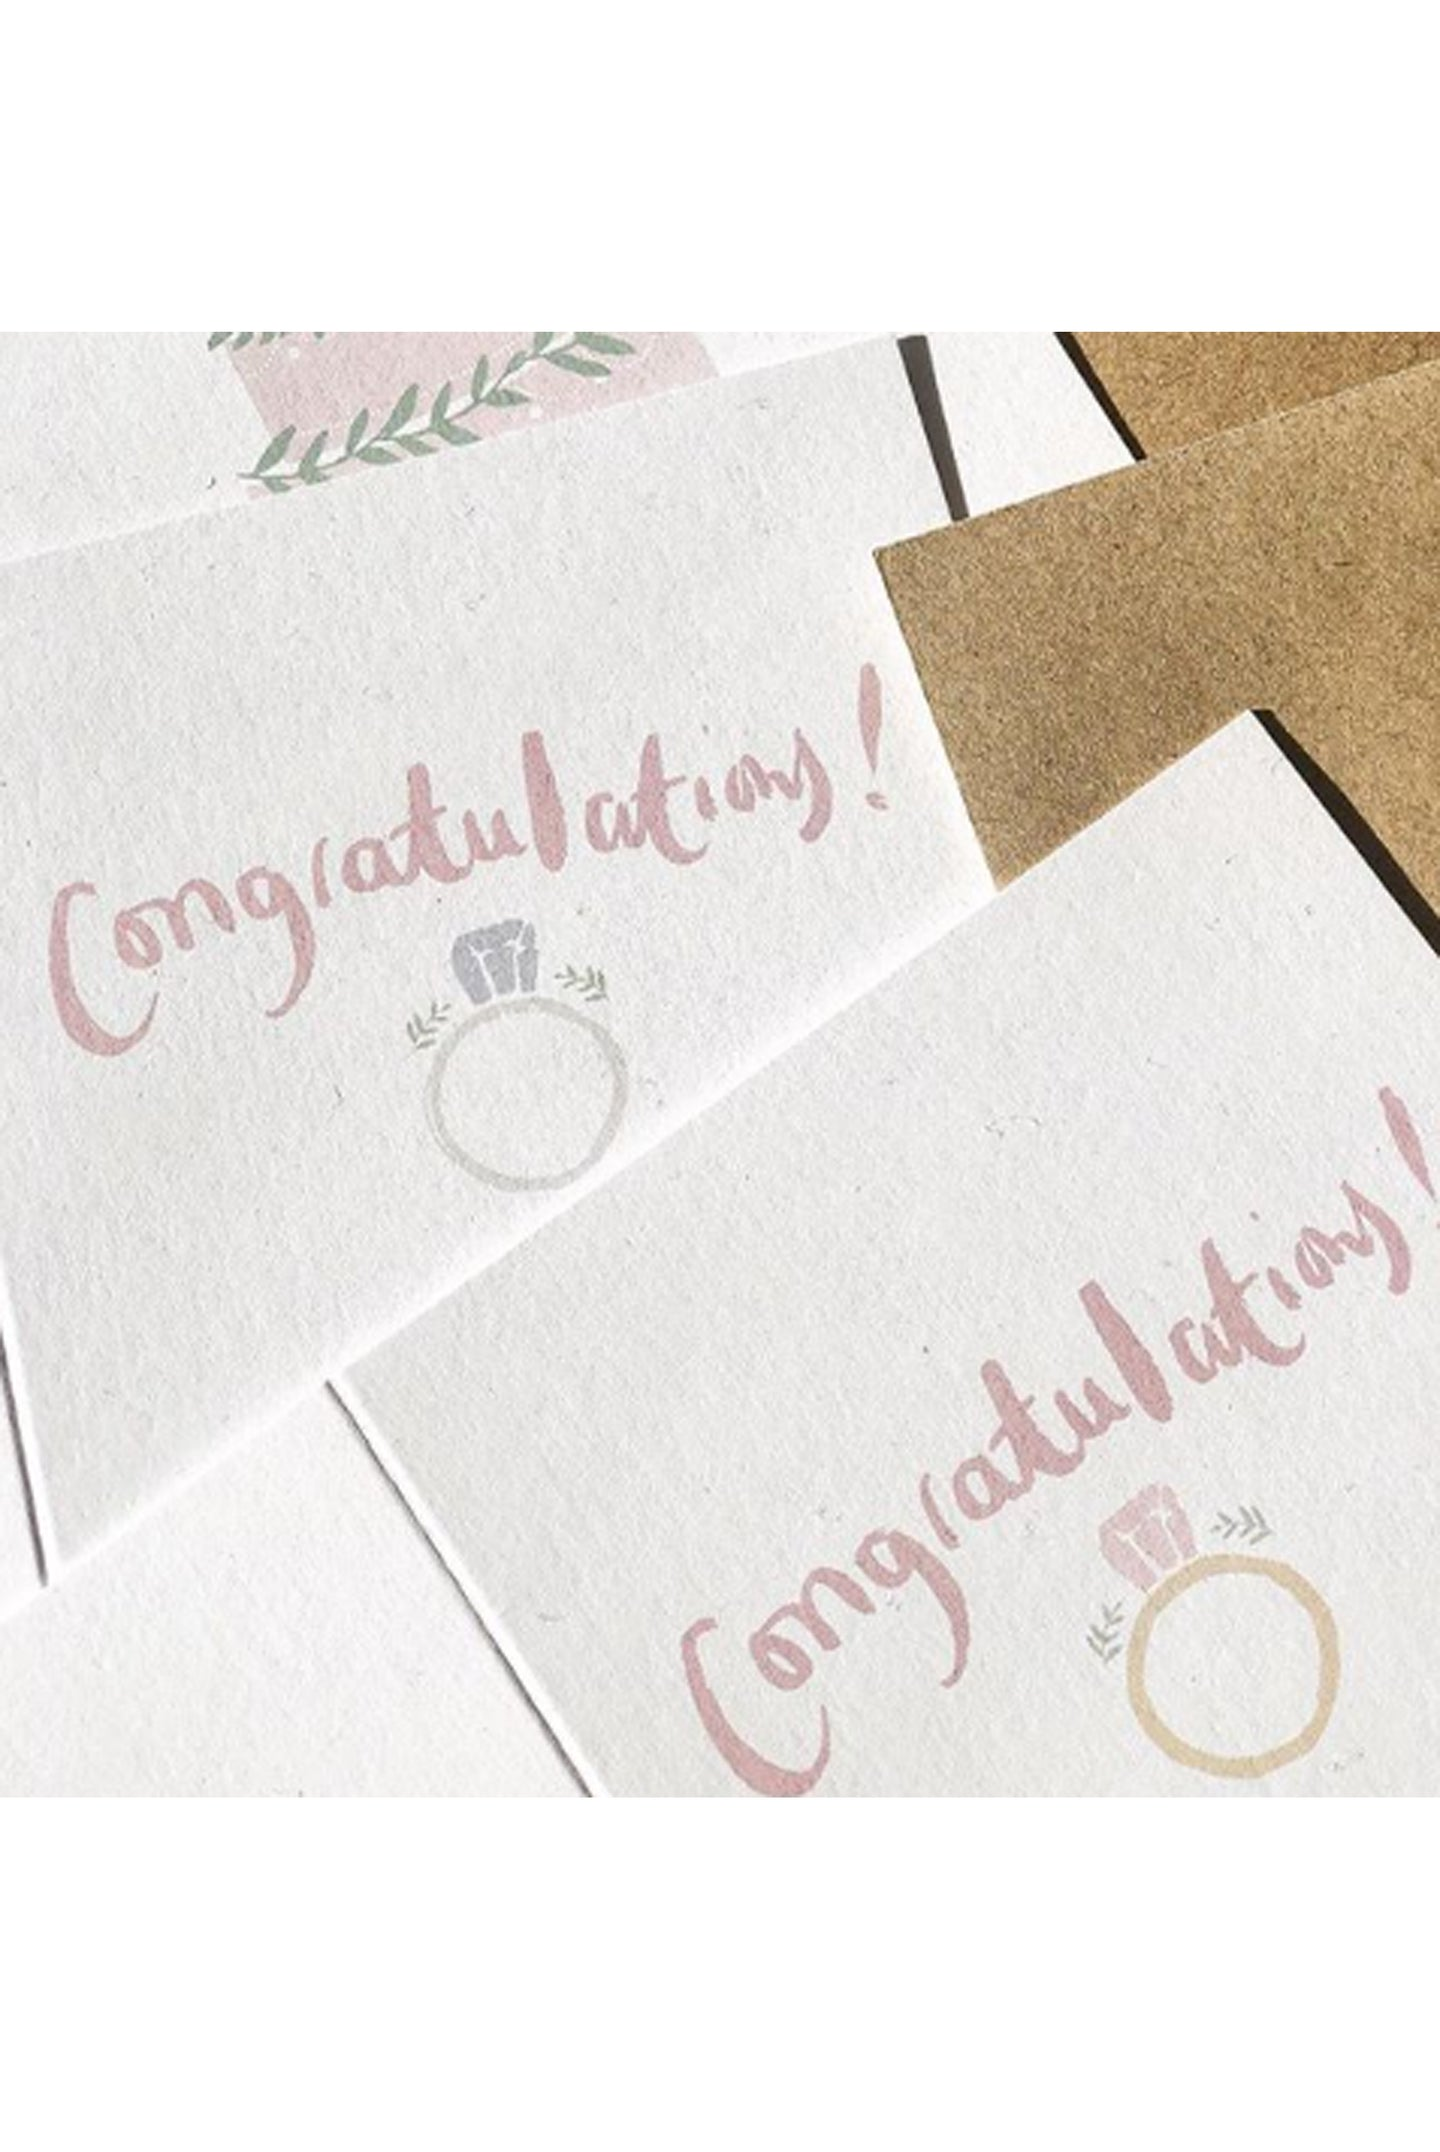 LN Congratulations Card